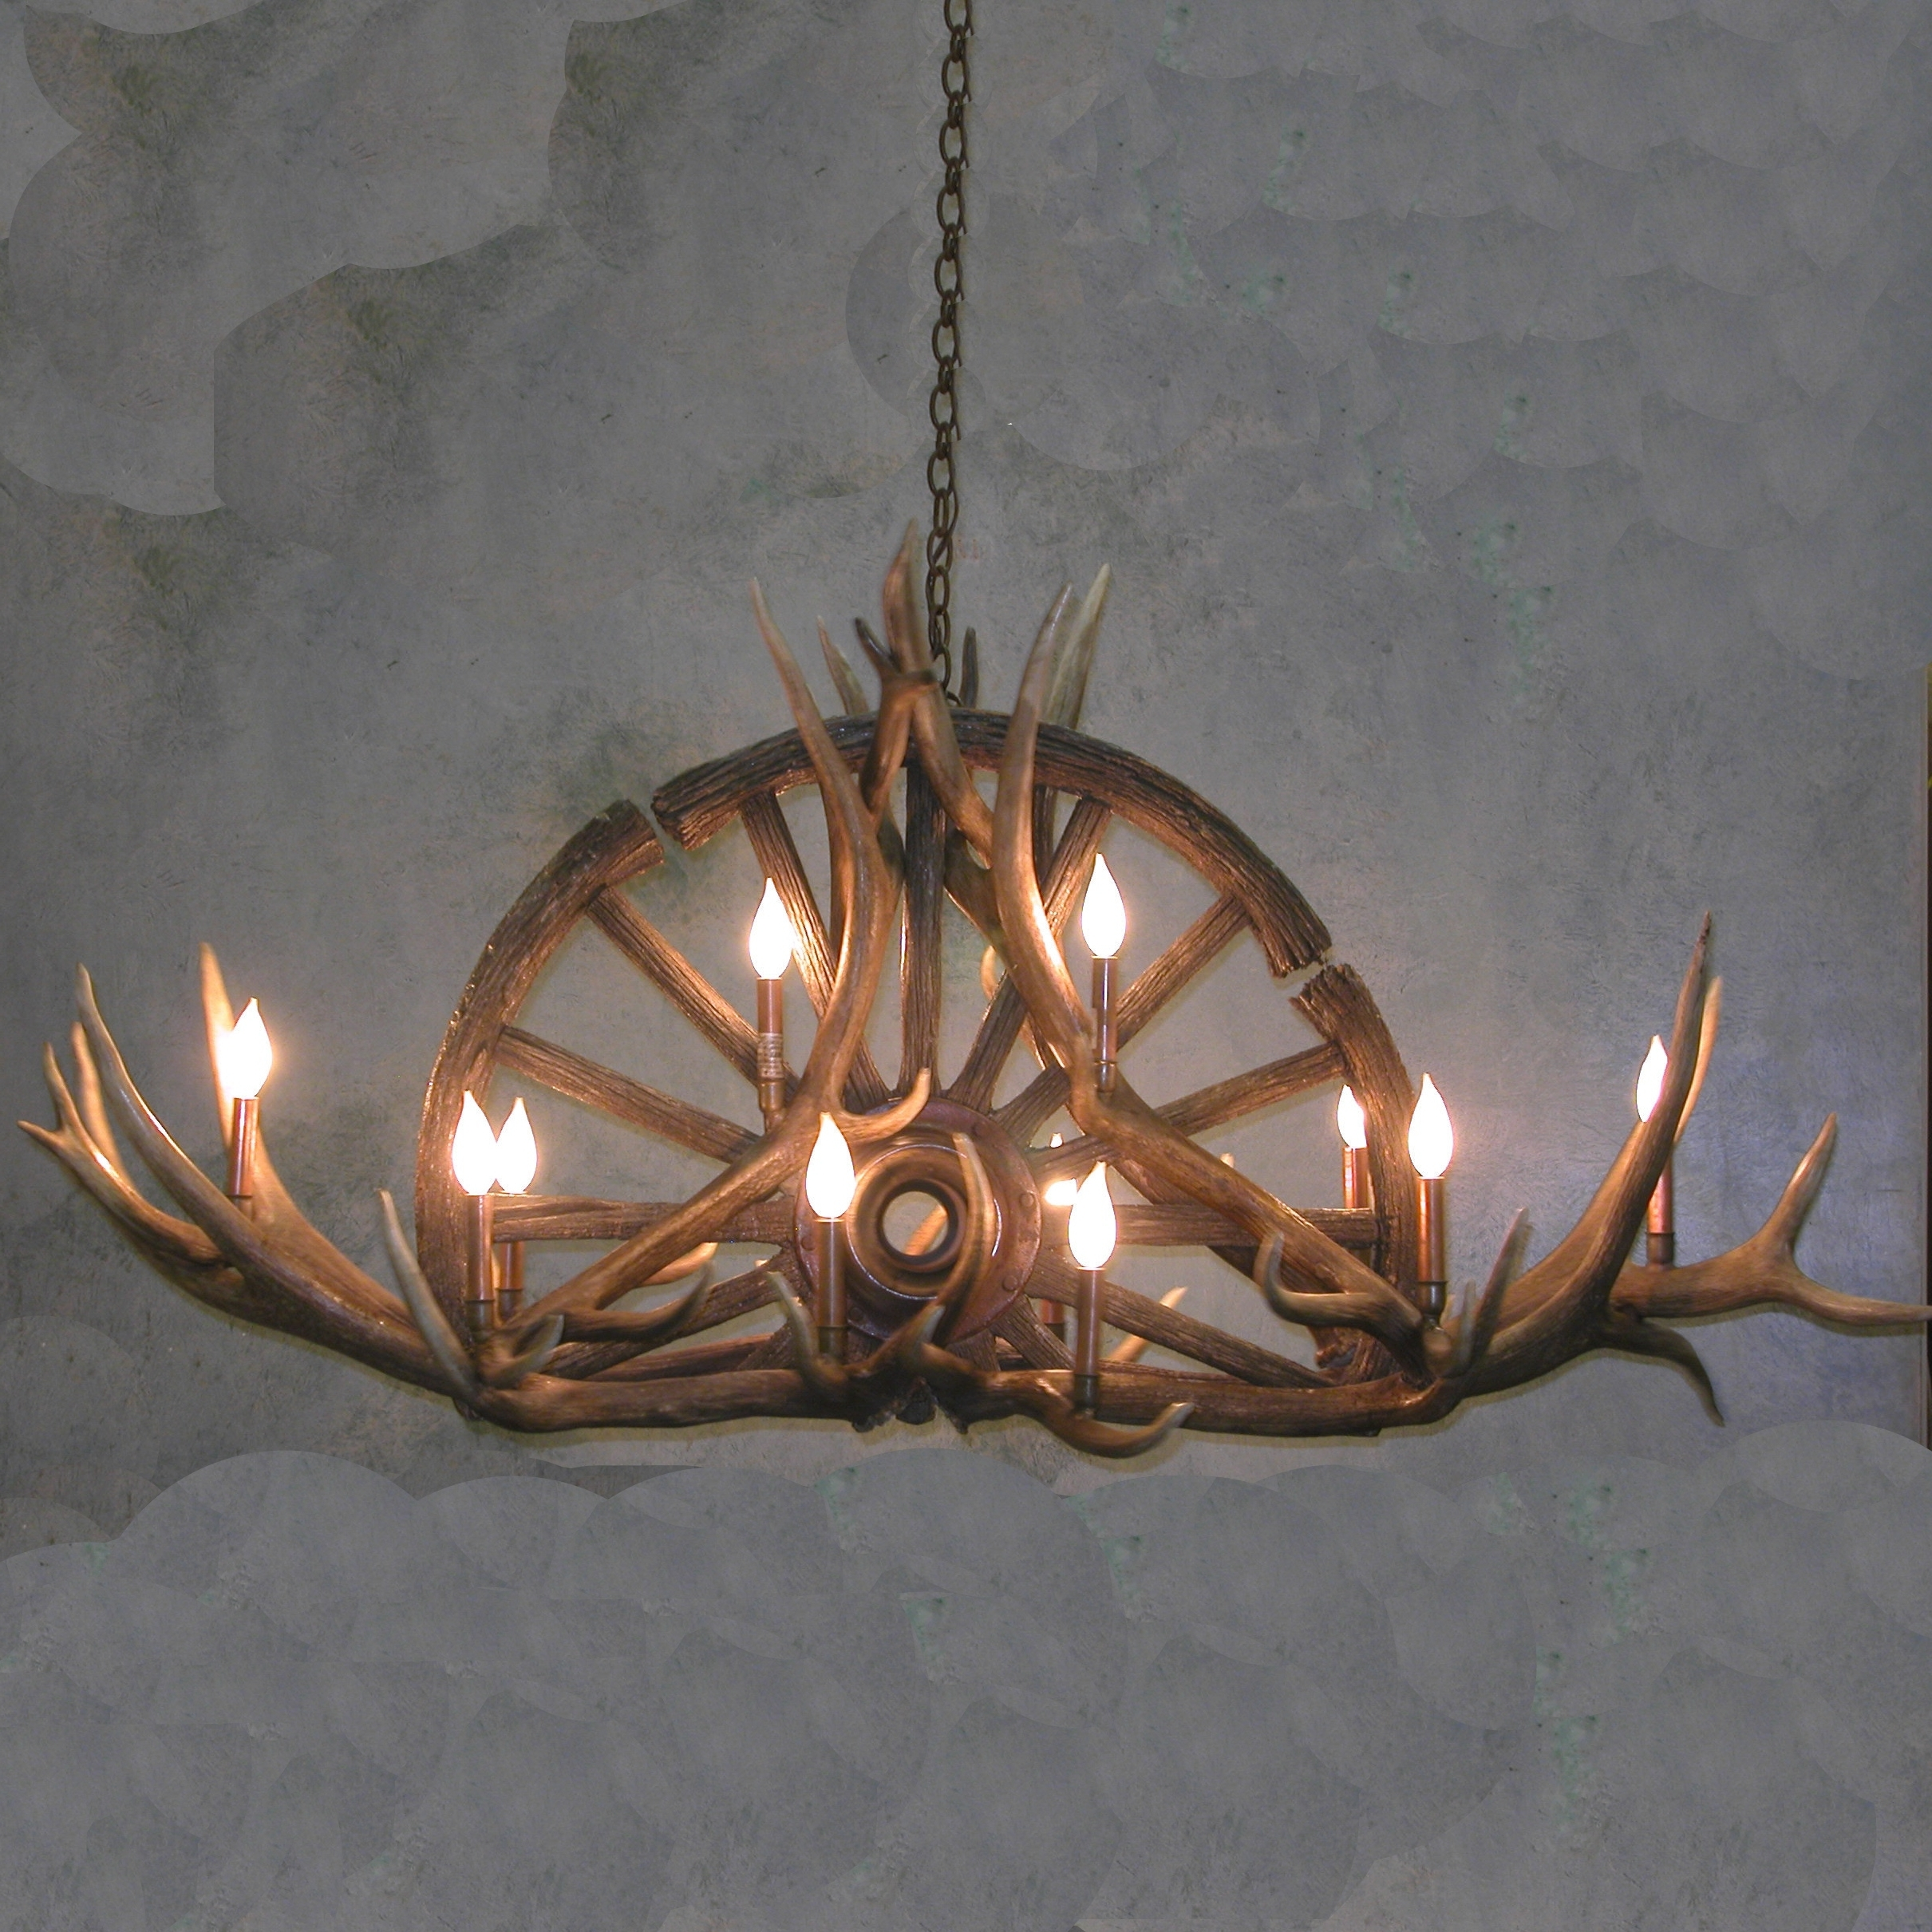 Displaying photos of large antler chandelier view 10 of 20 photos widely used large antler chandelier within wagon wheel antler chandelier gallery 10 of 20 aloadofball Image collections